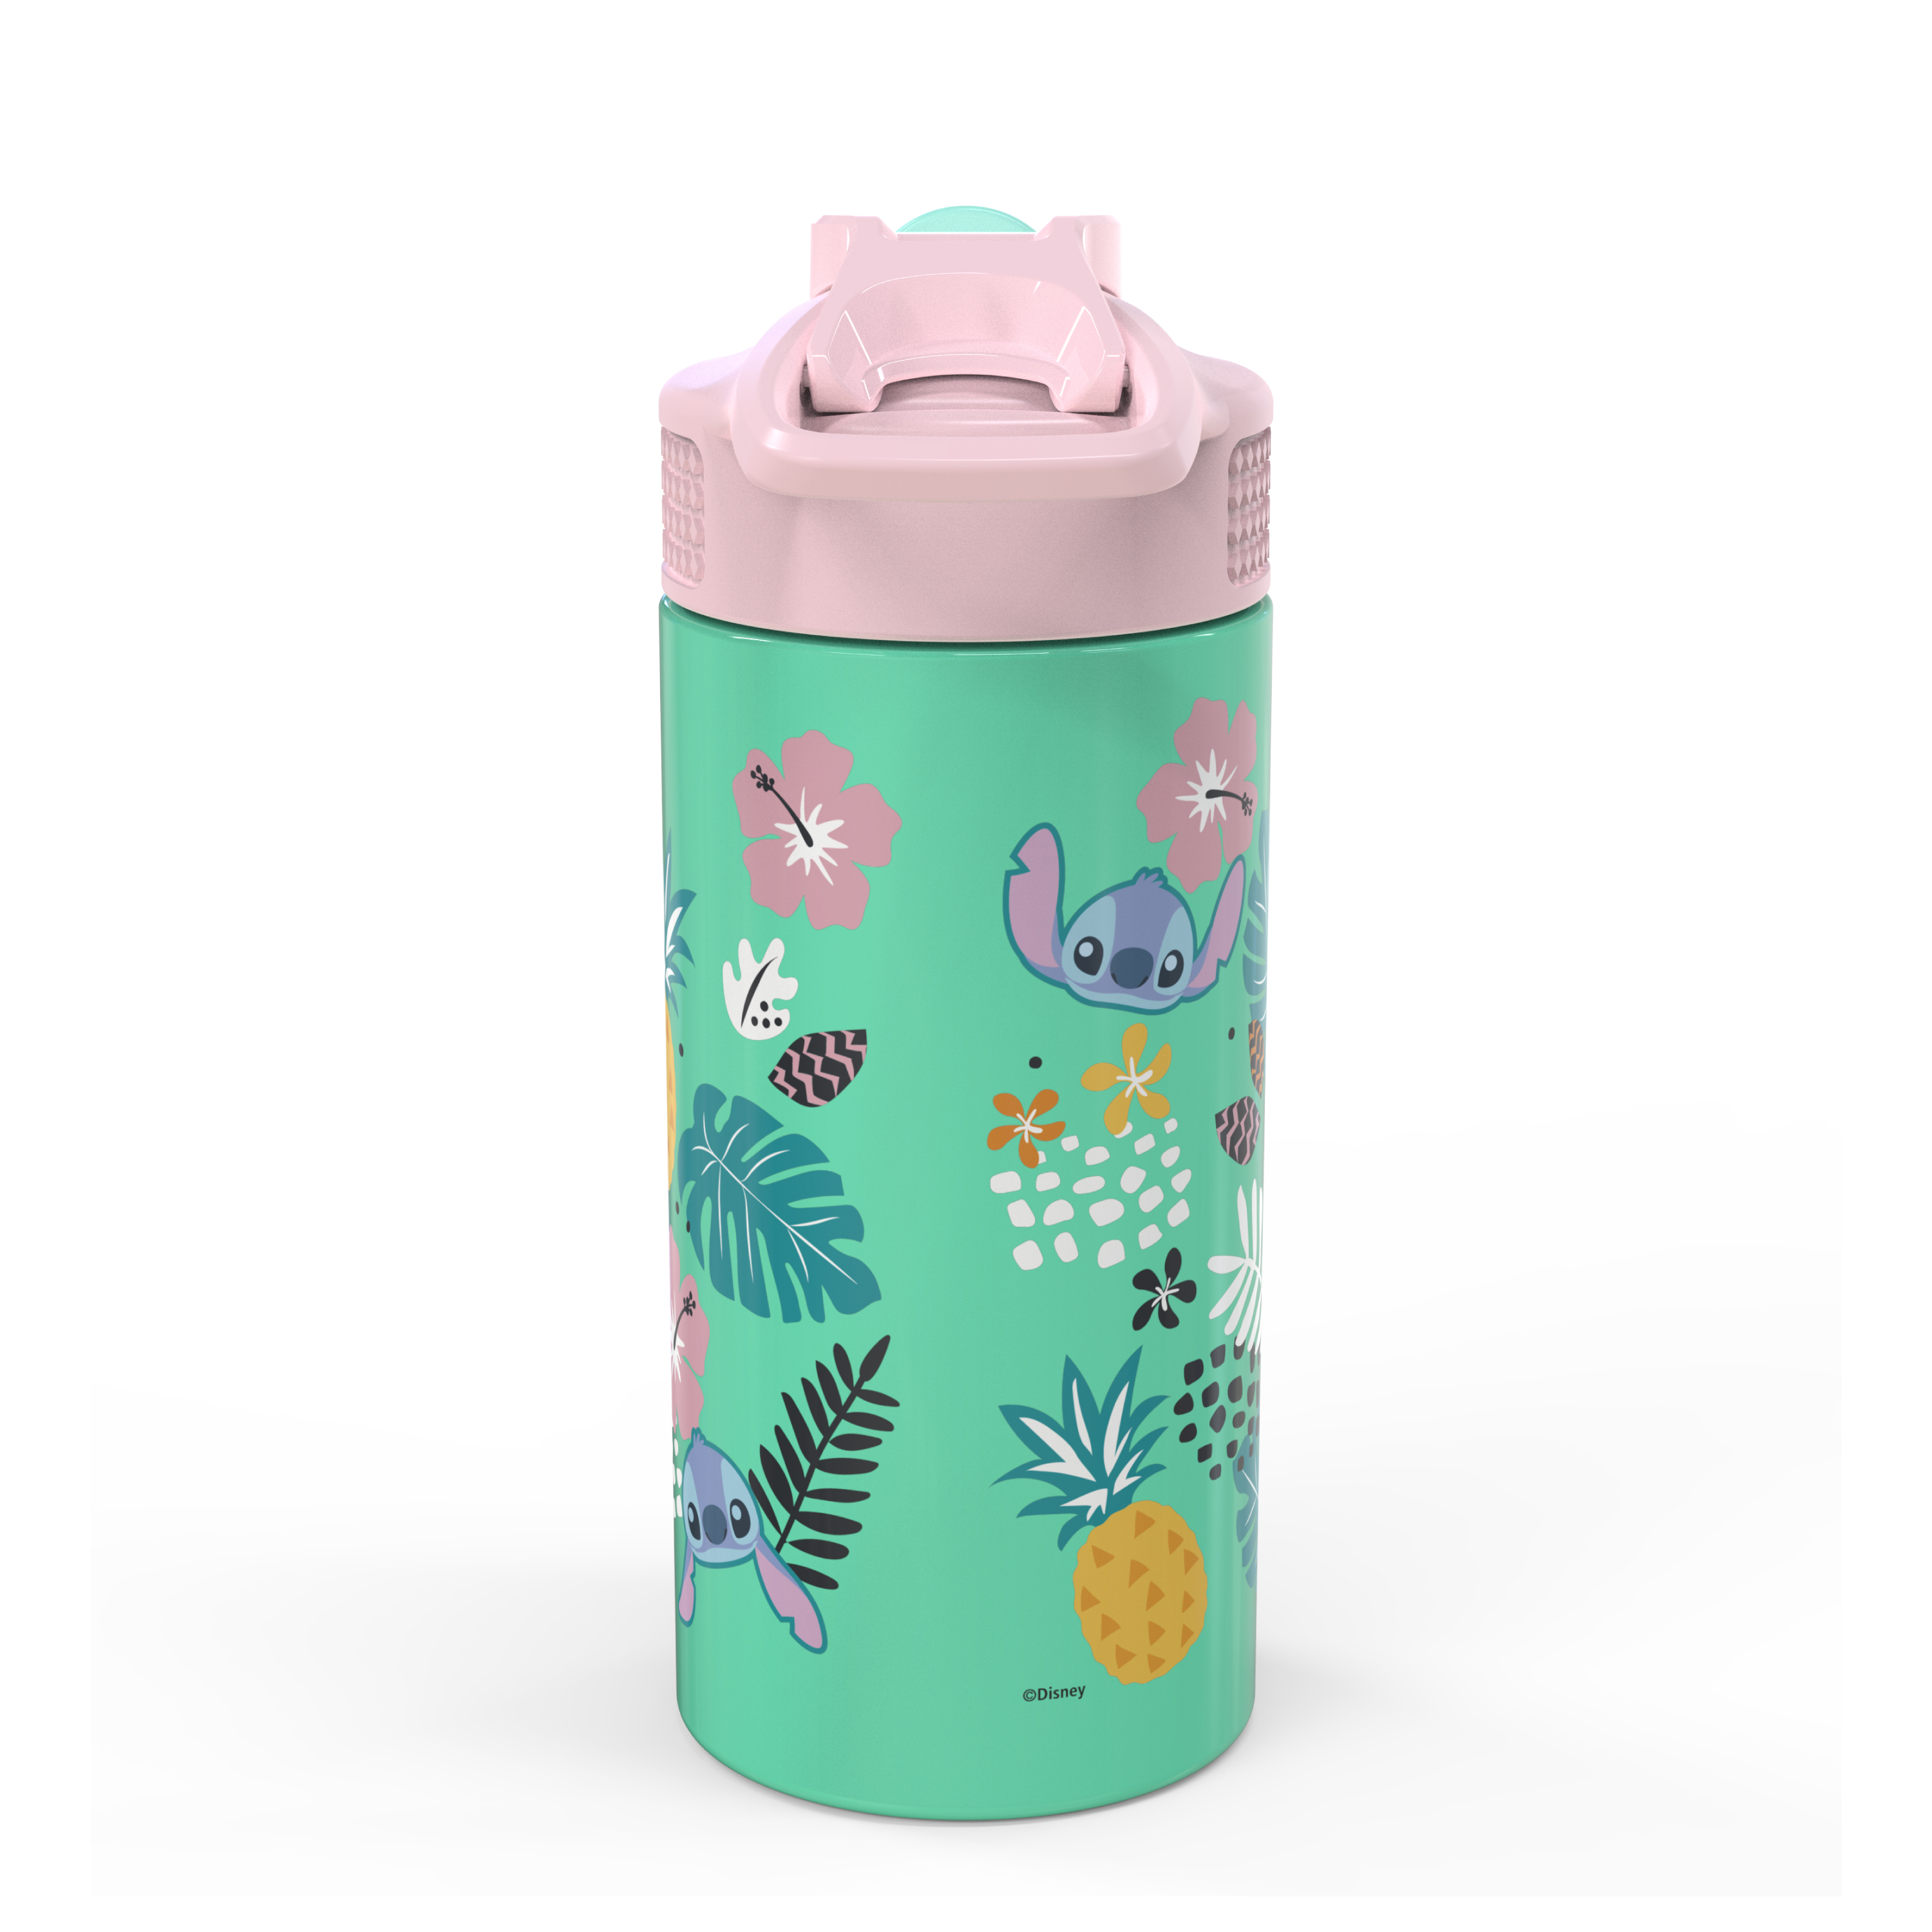 Disney 14 ounce Stainless Steel Vacuum Insulated Water Bottle, Lilo and Stitch slideshow image 5